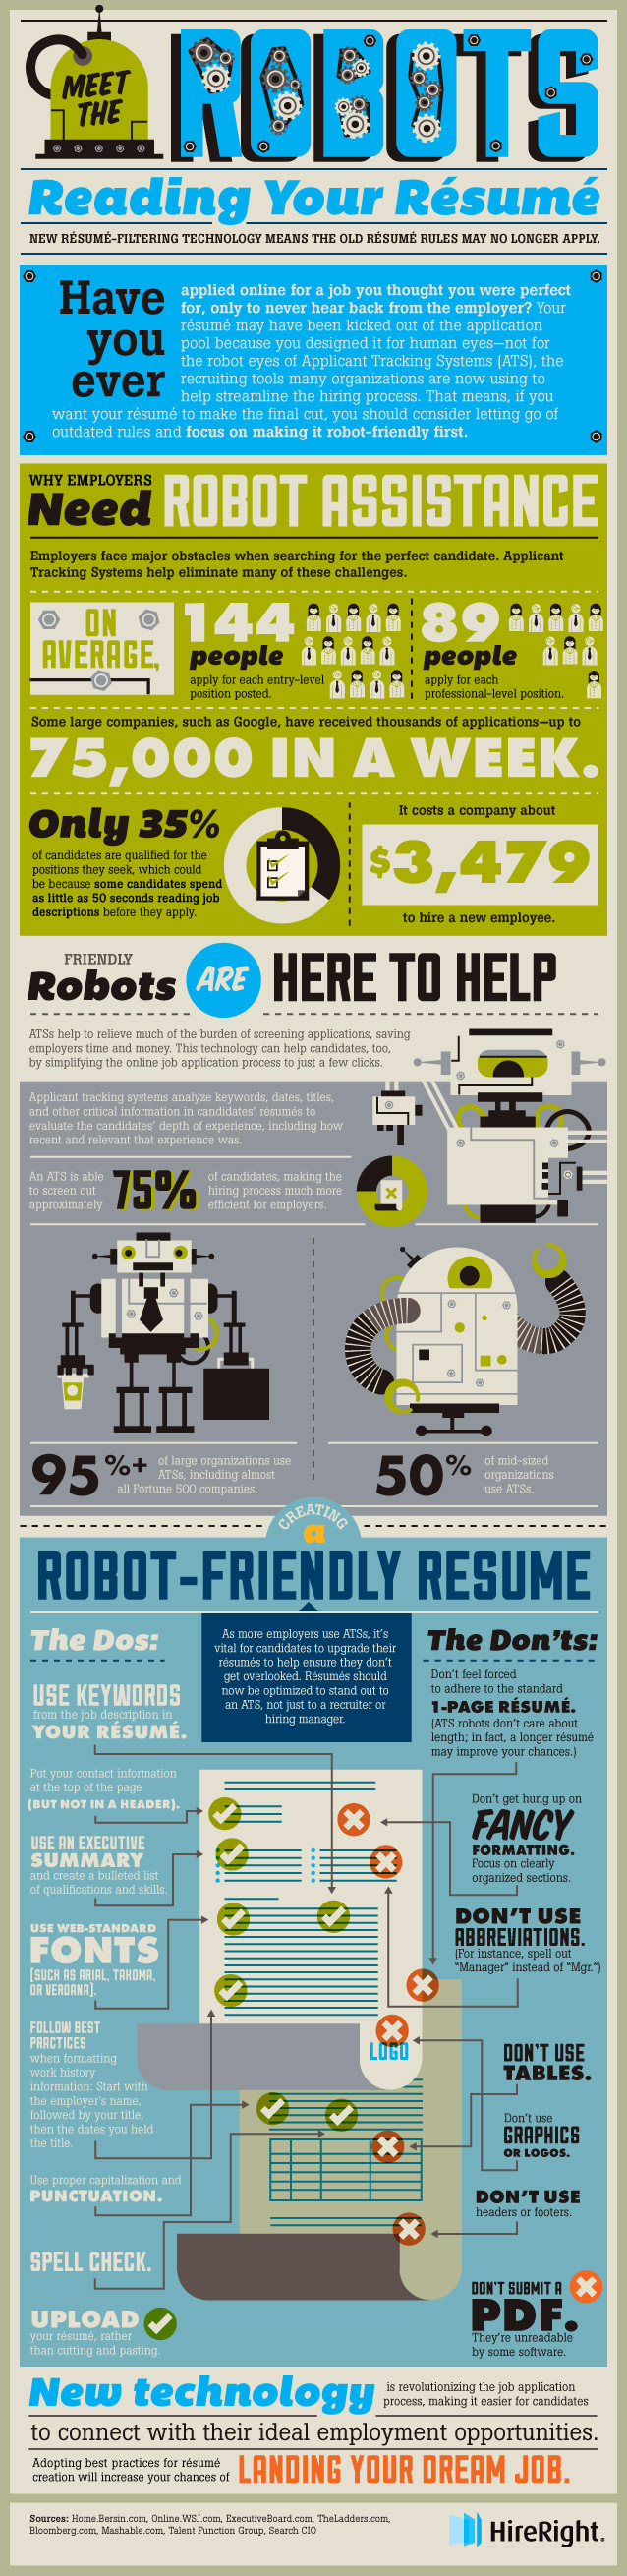 How To Impress The Robots Reading Your Resume Infographic Resume Tips Resume Advice Job Search Tips